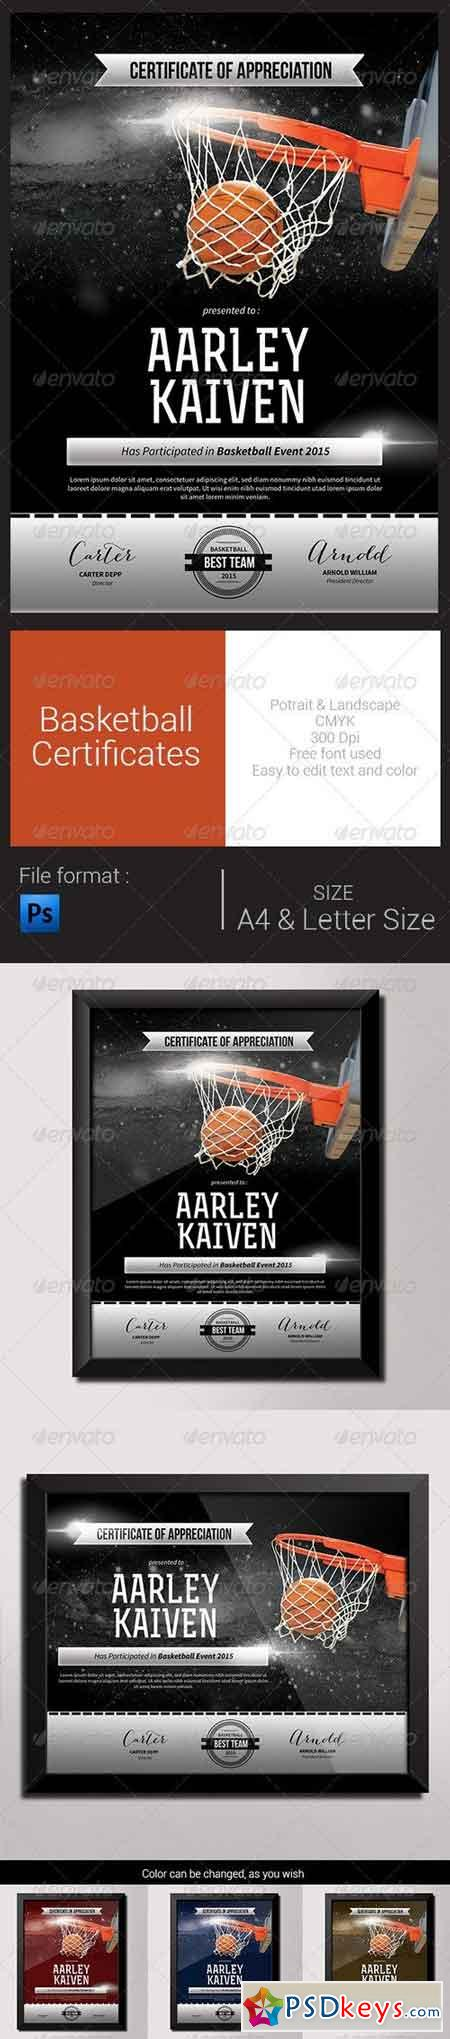 Basketball Certificates 8292977